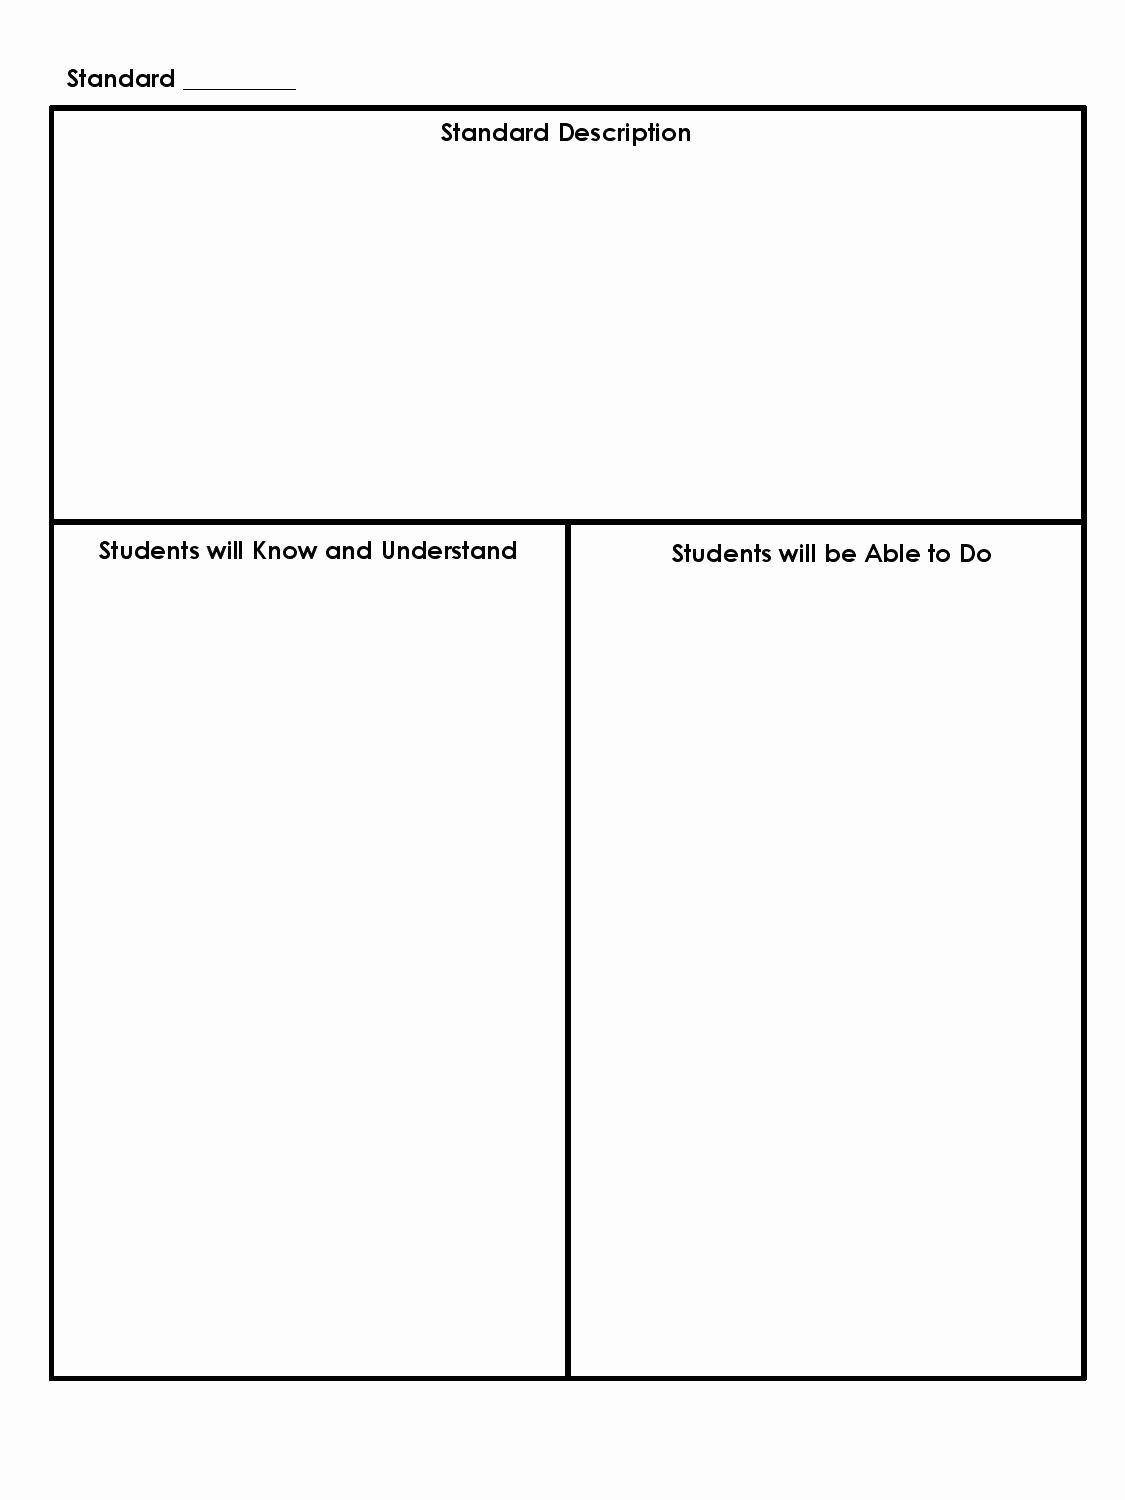 Common Core Lesson Plan Template Beautiful Mon Core Planning Template Simple Free Template